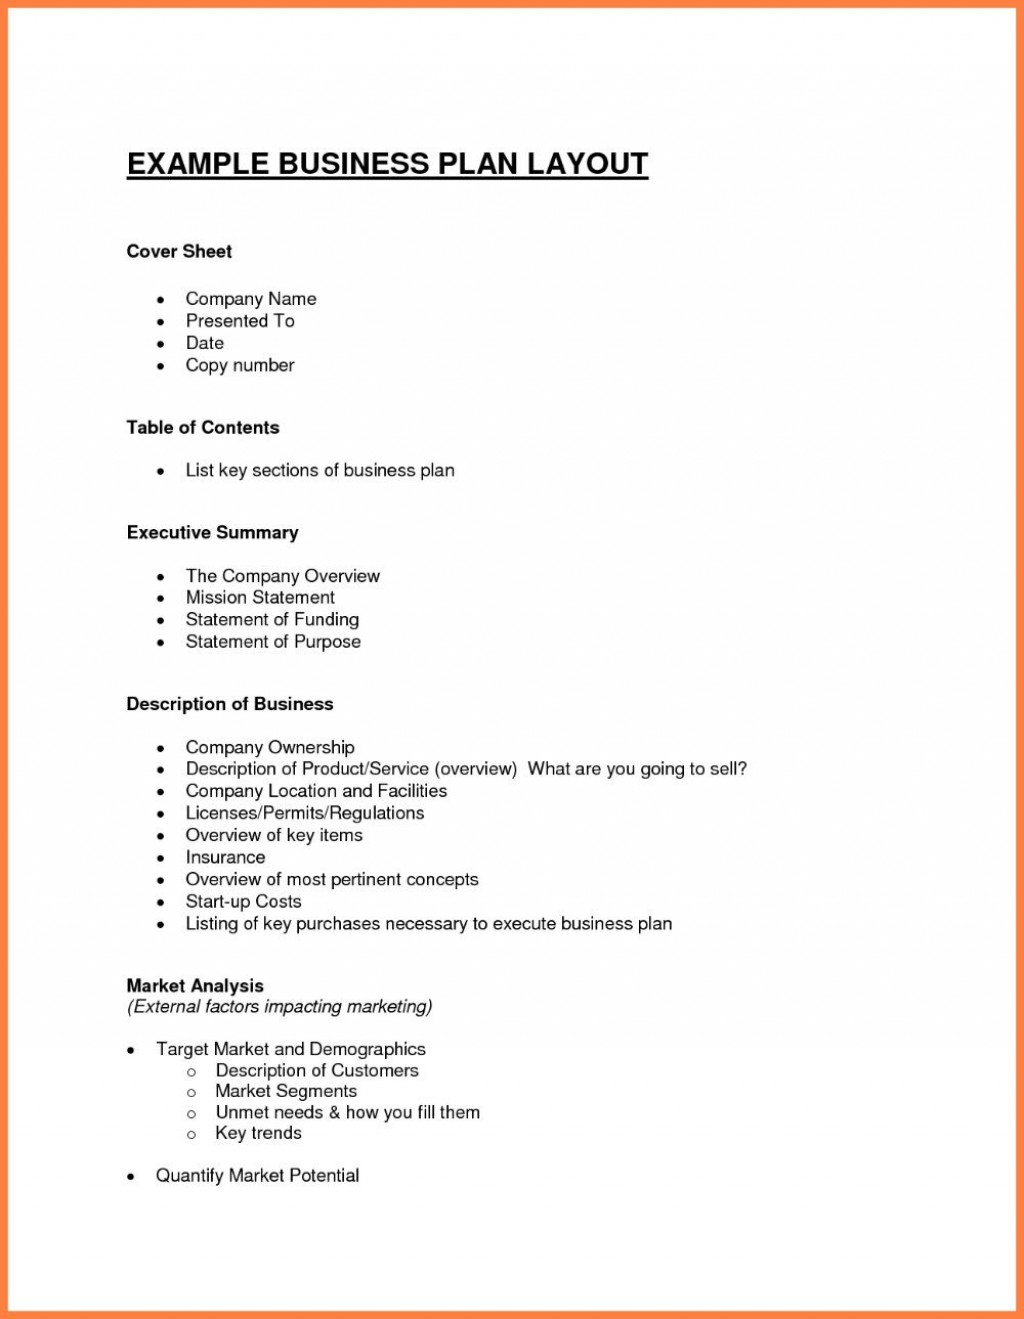 003 Exceptional Simple Busines Plan Template Free Picture  Word Document DownloadLarge